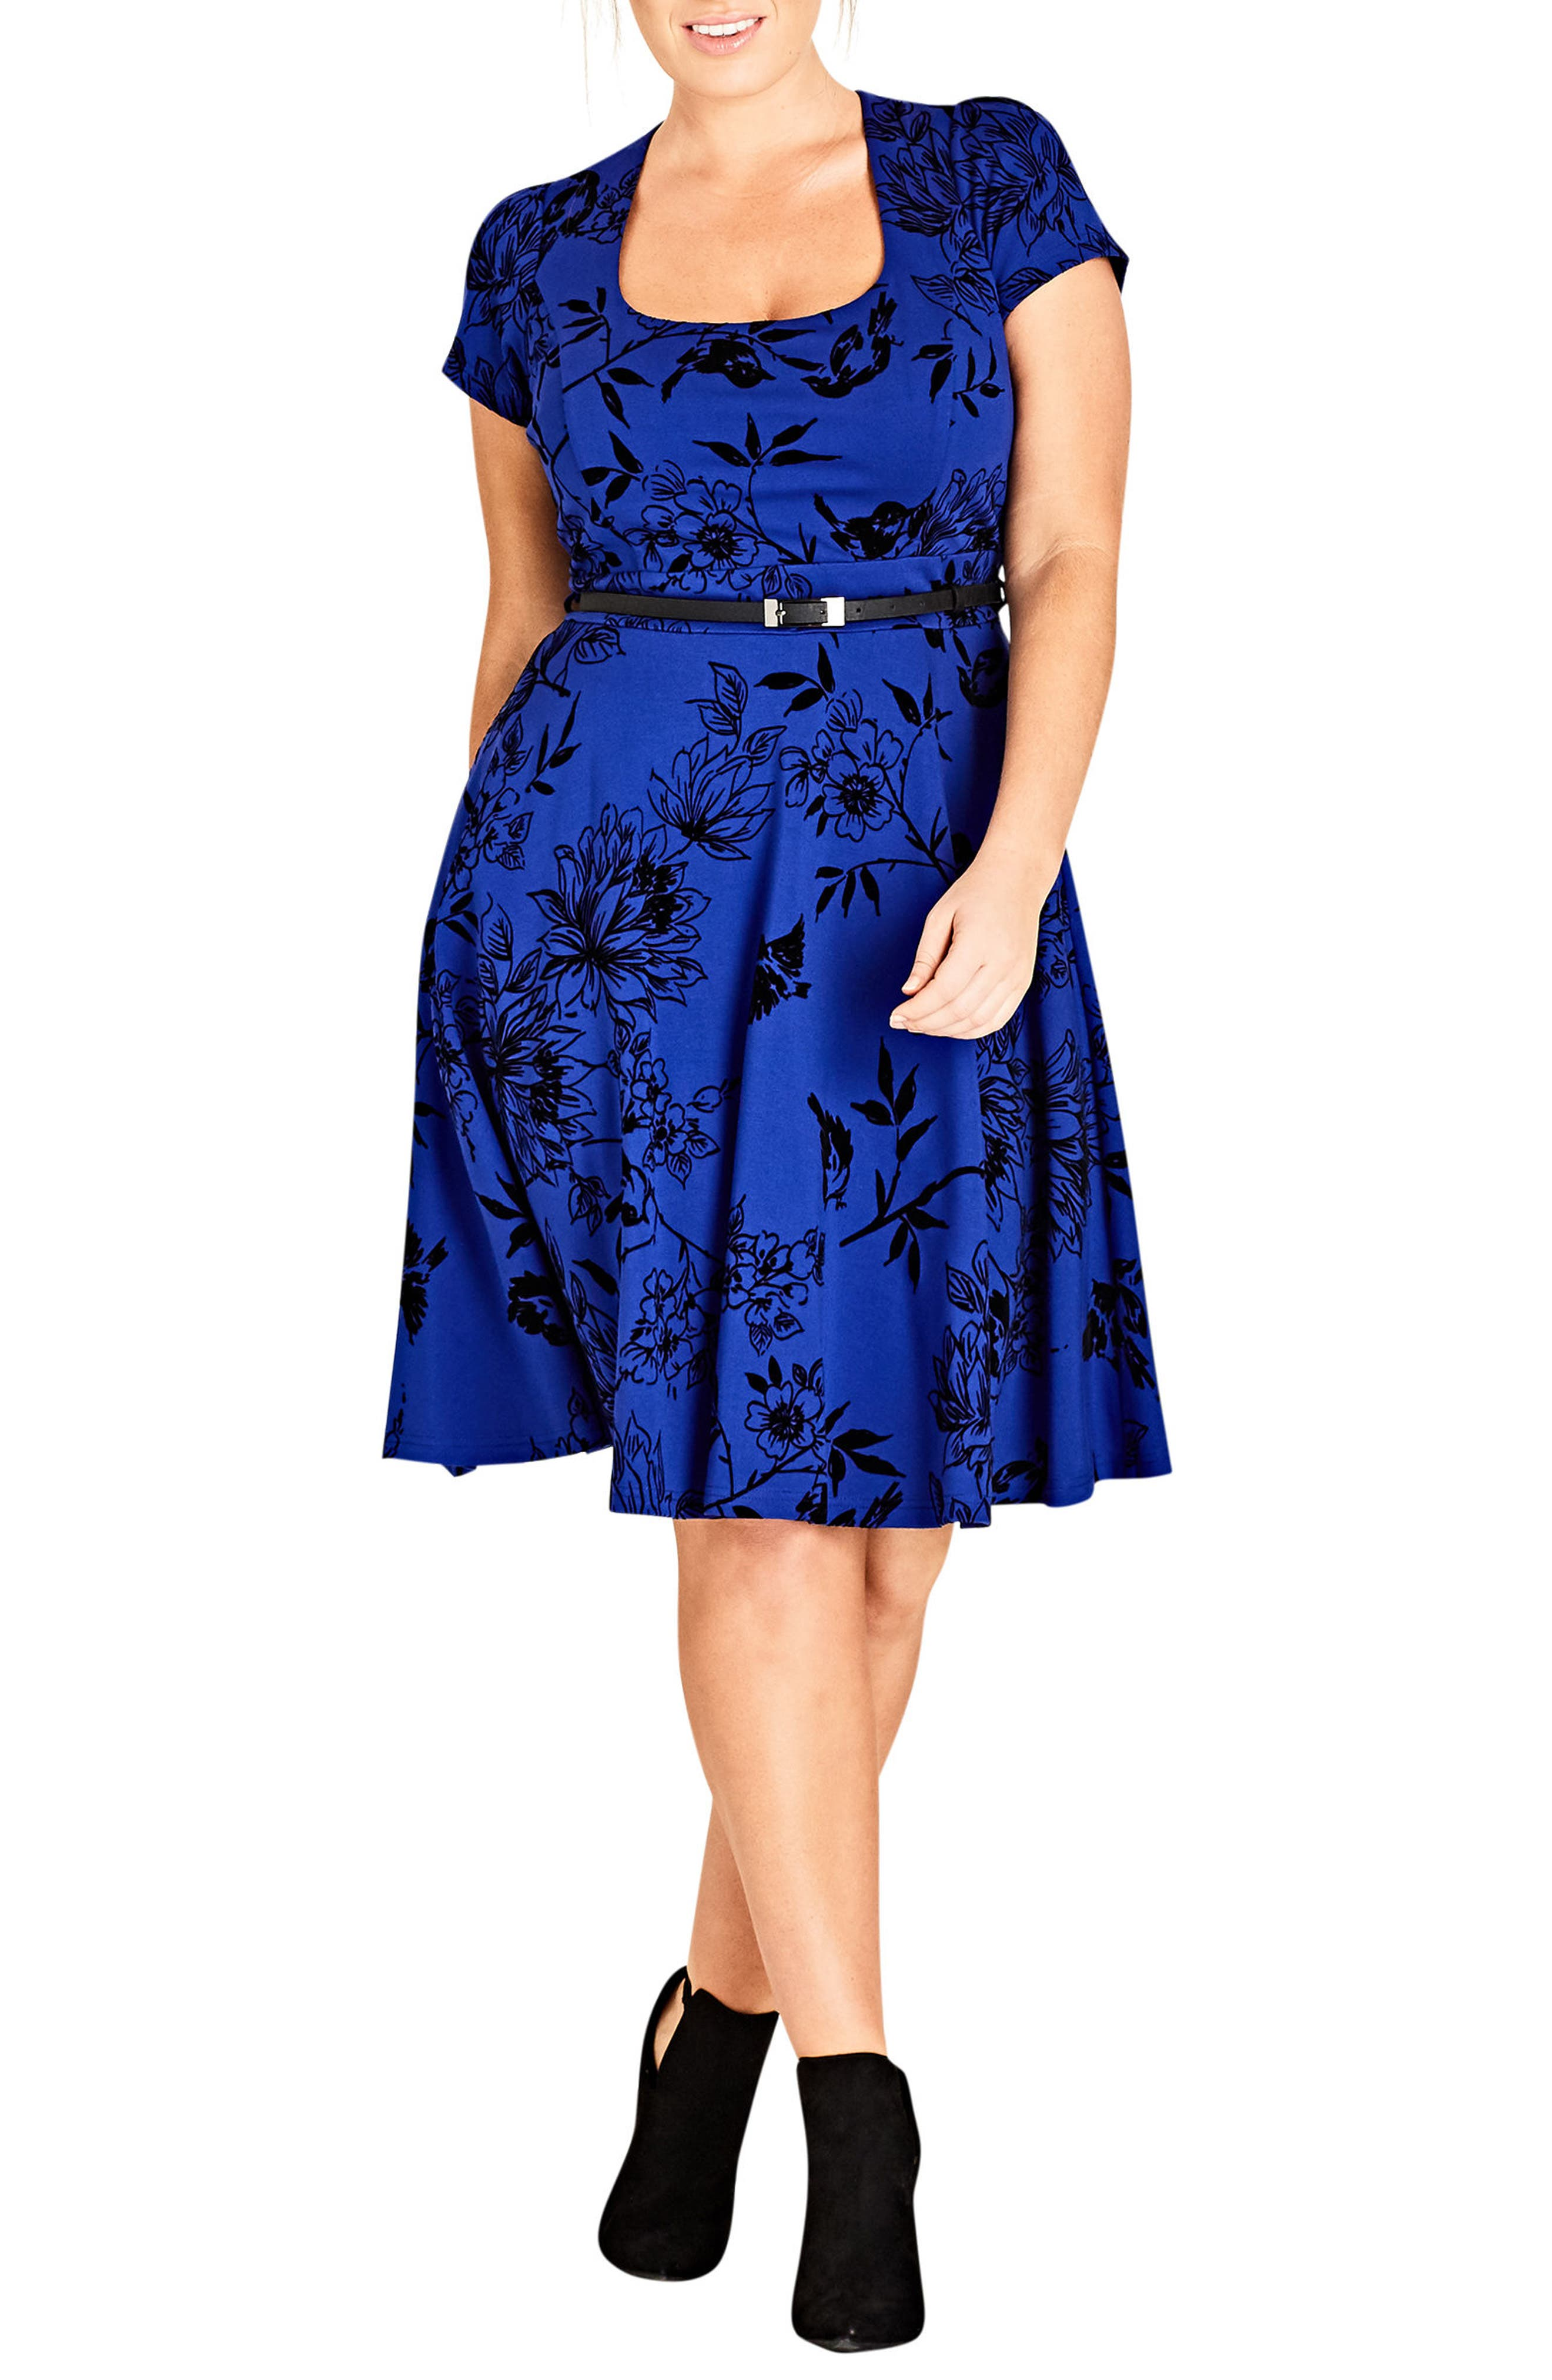 Birdy Flock Fit & Flare Dress,                         Main,                         color, 408